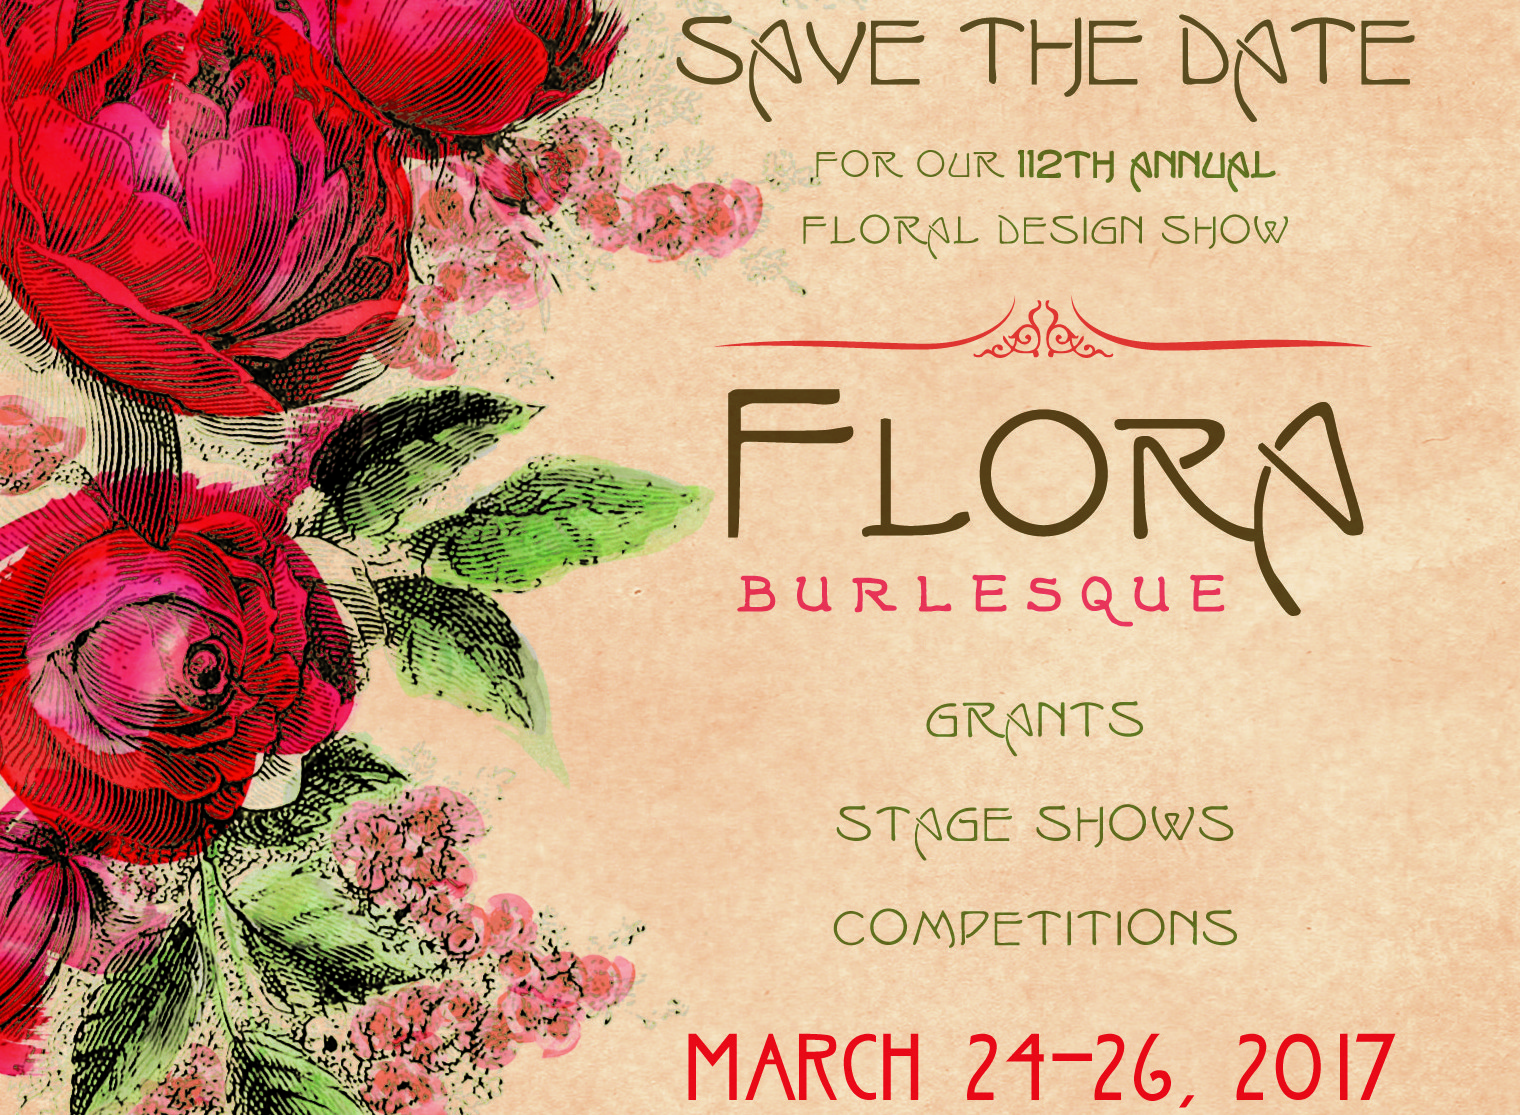 Annual Floral Design Show